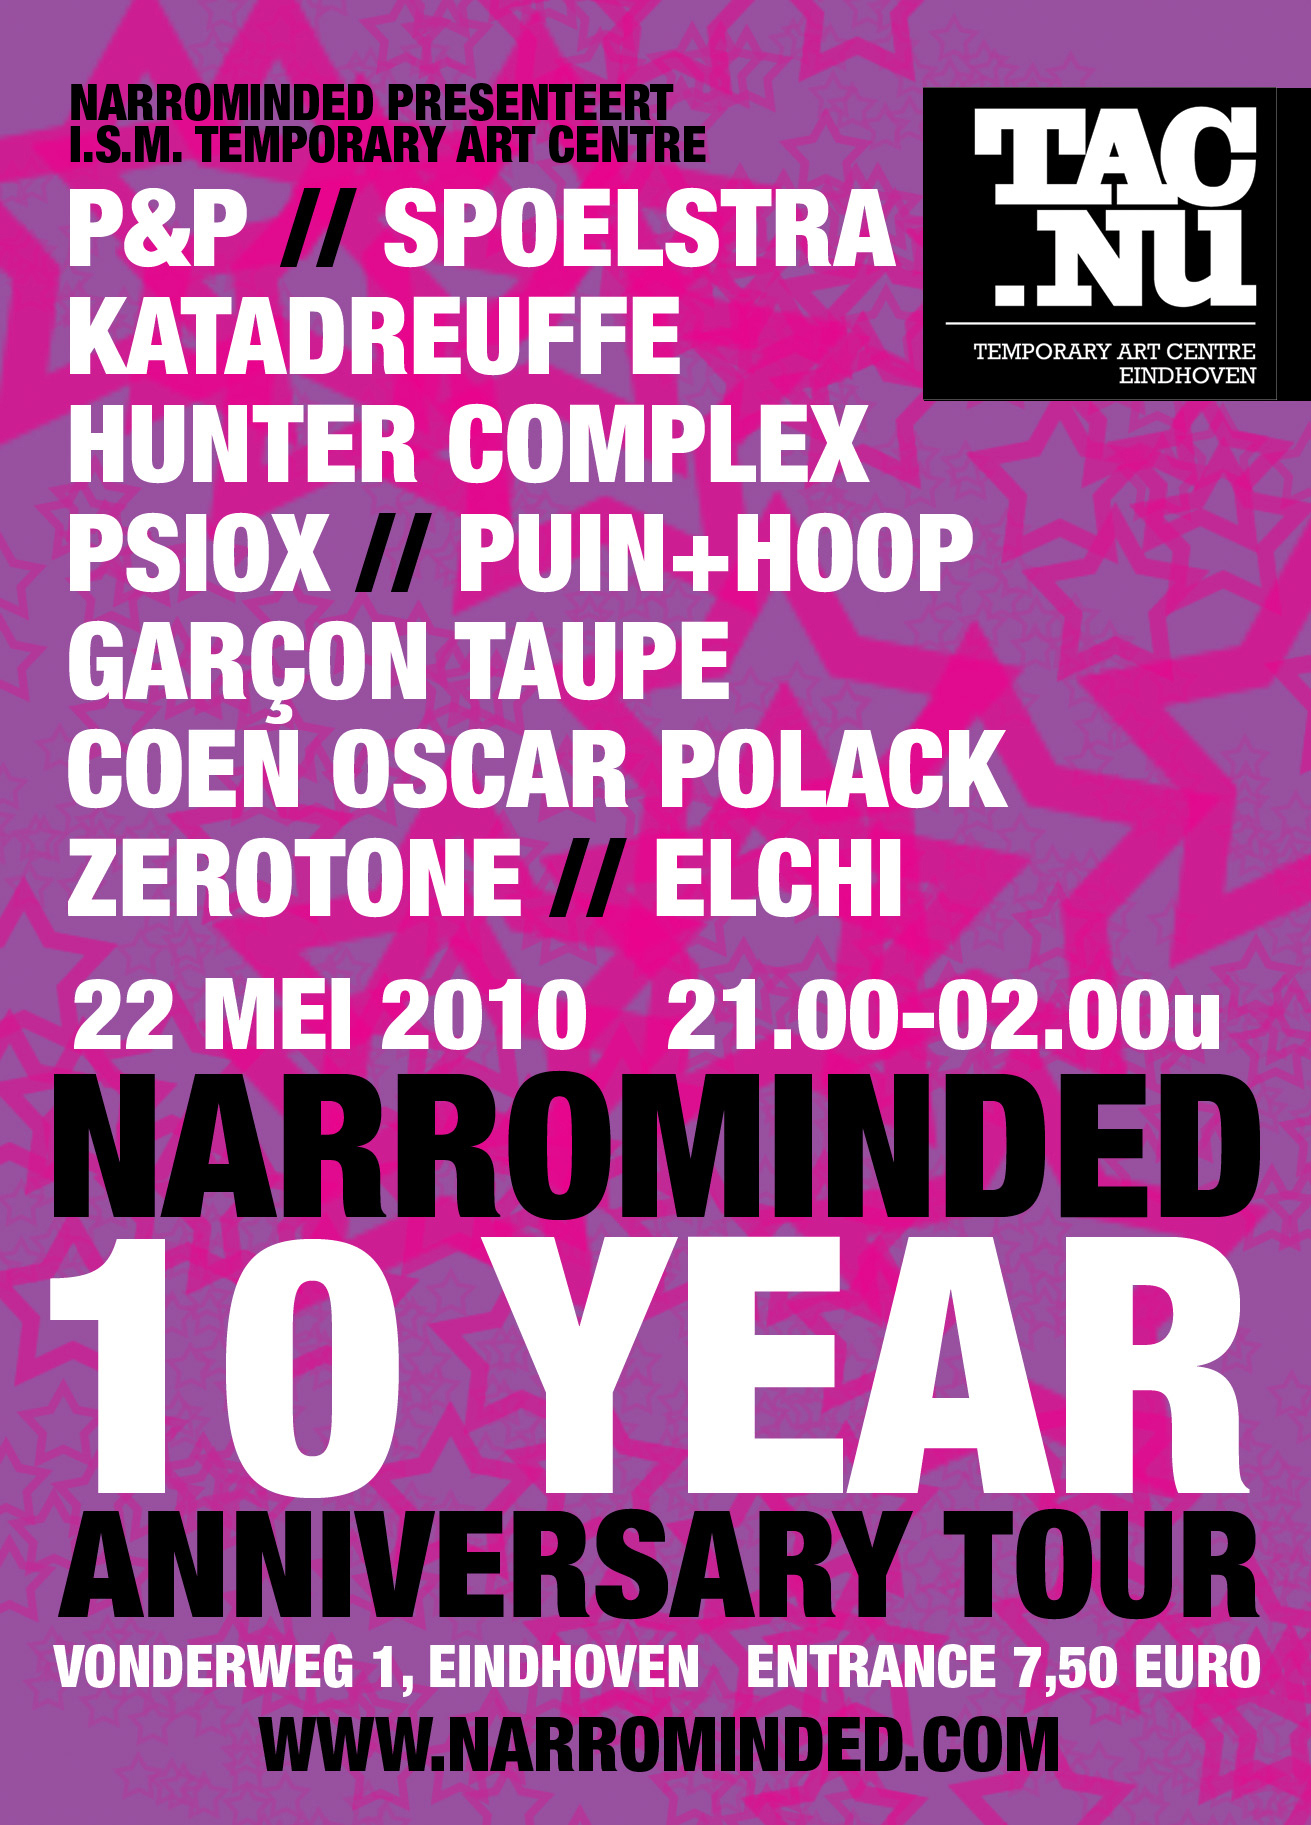 flyer: narrominded 10 year anniversary tour, tac, eindhoven - may 22 2010